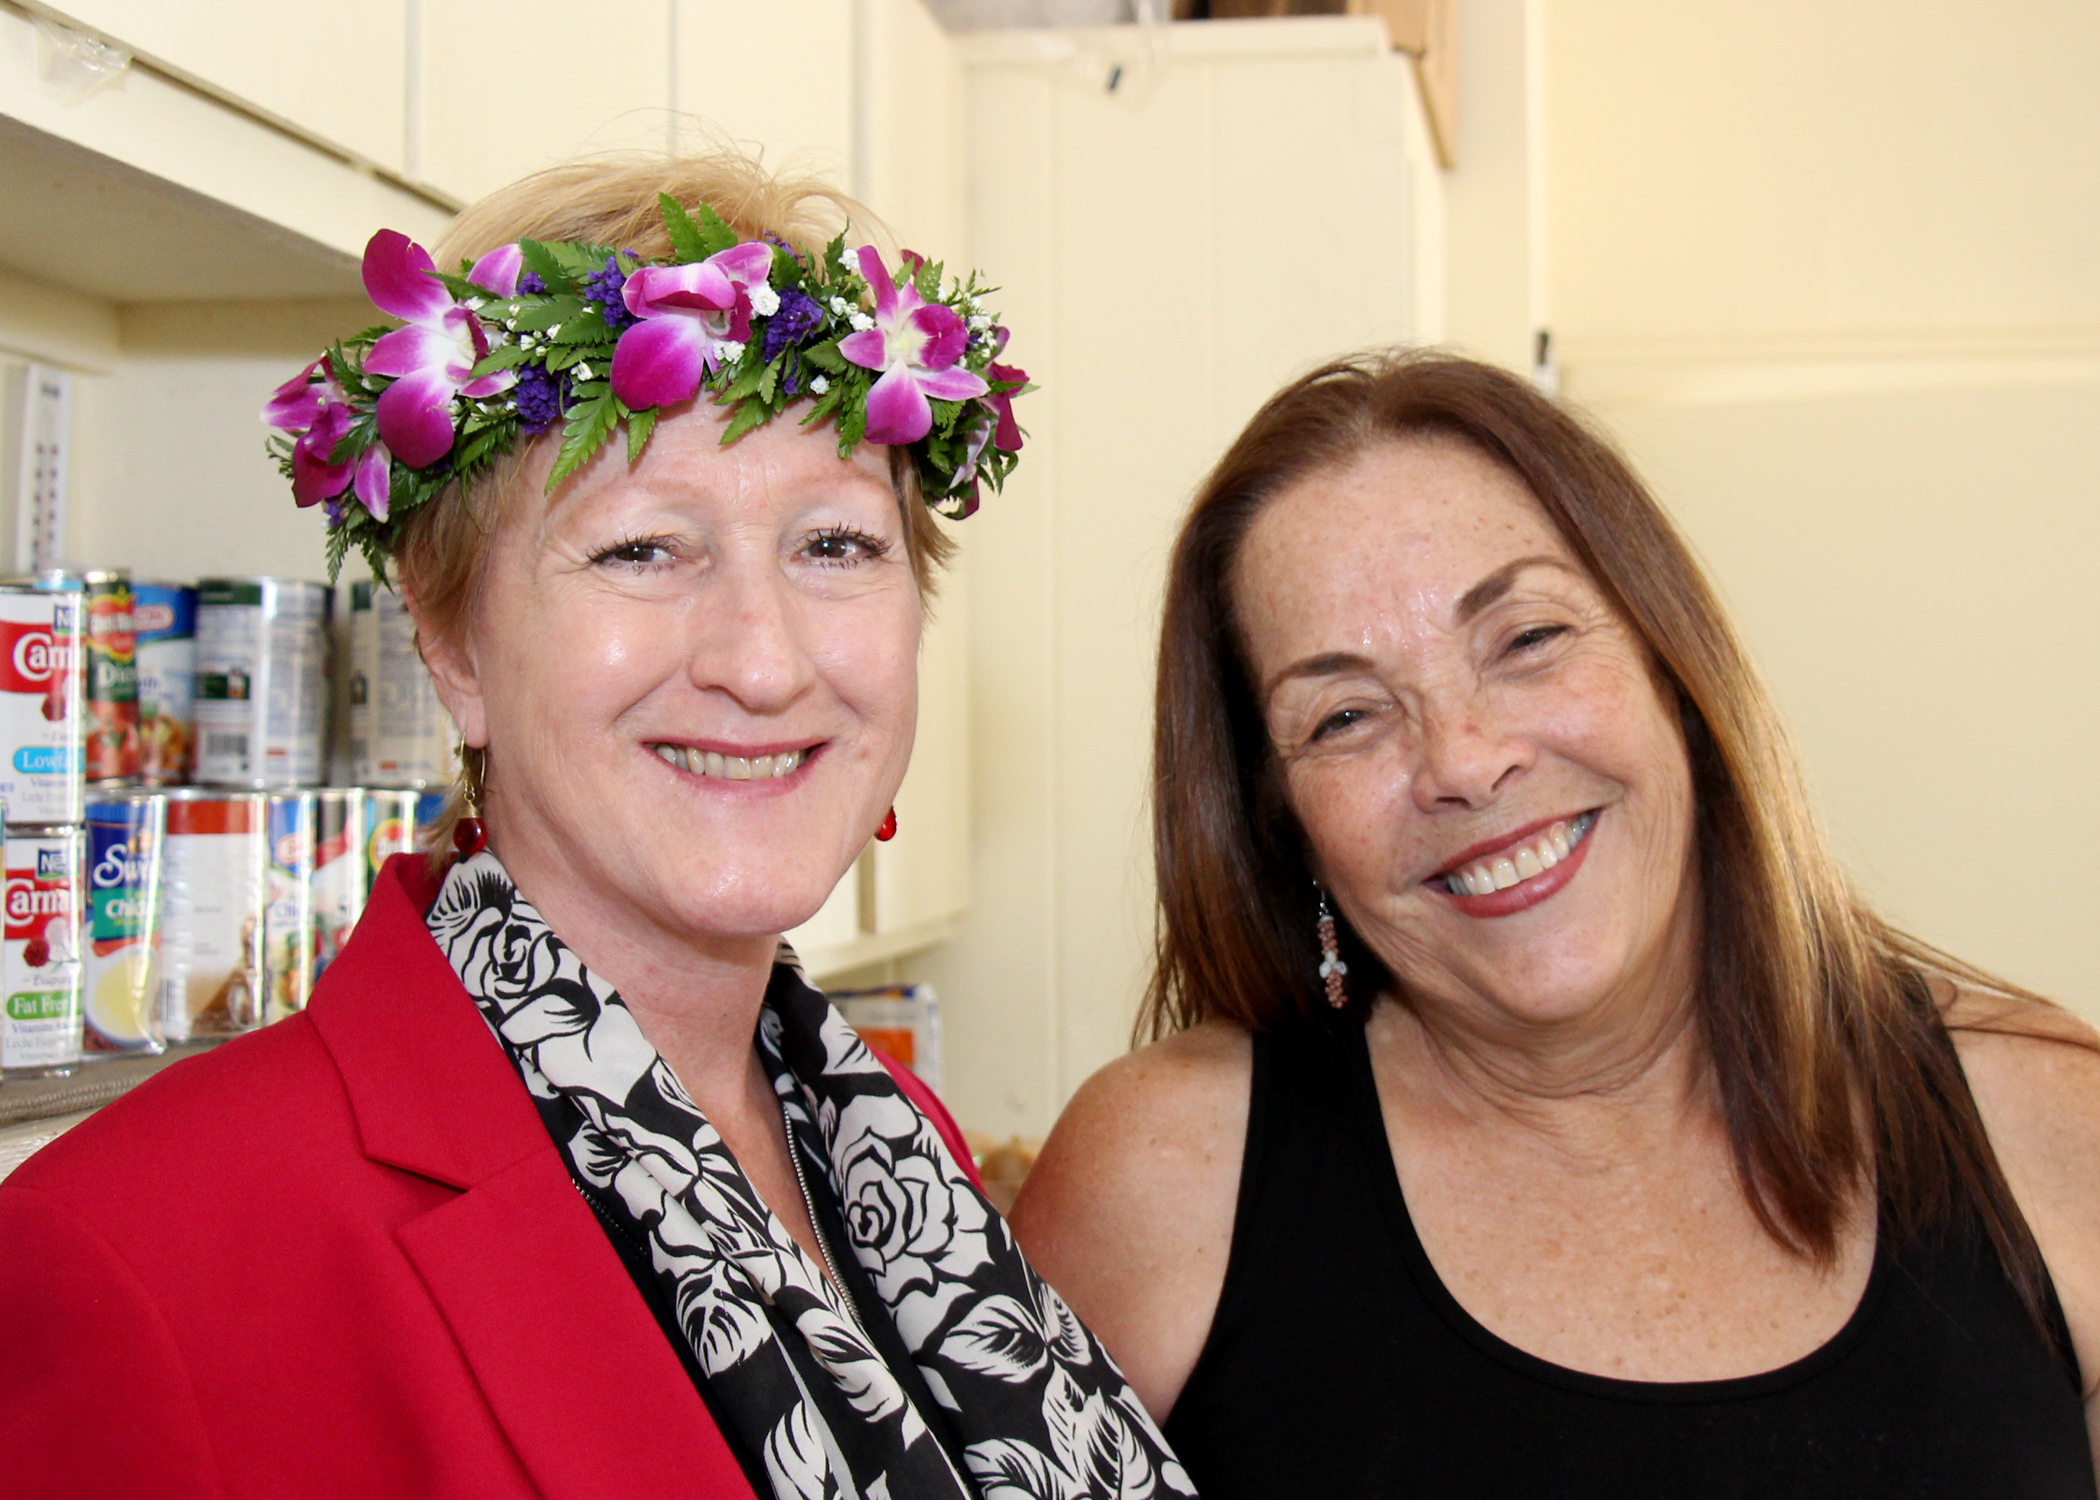 (L to R) Patti Bates (CFS Chief Performance Officer & Nana's House Co-Founder) & Momi Machado (CFS Nana's House Program Manager)